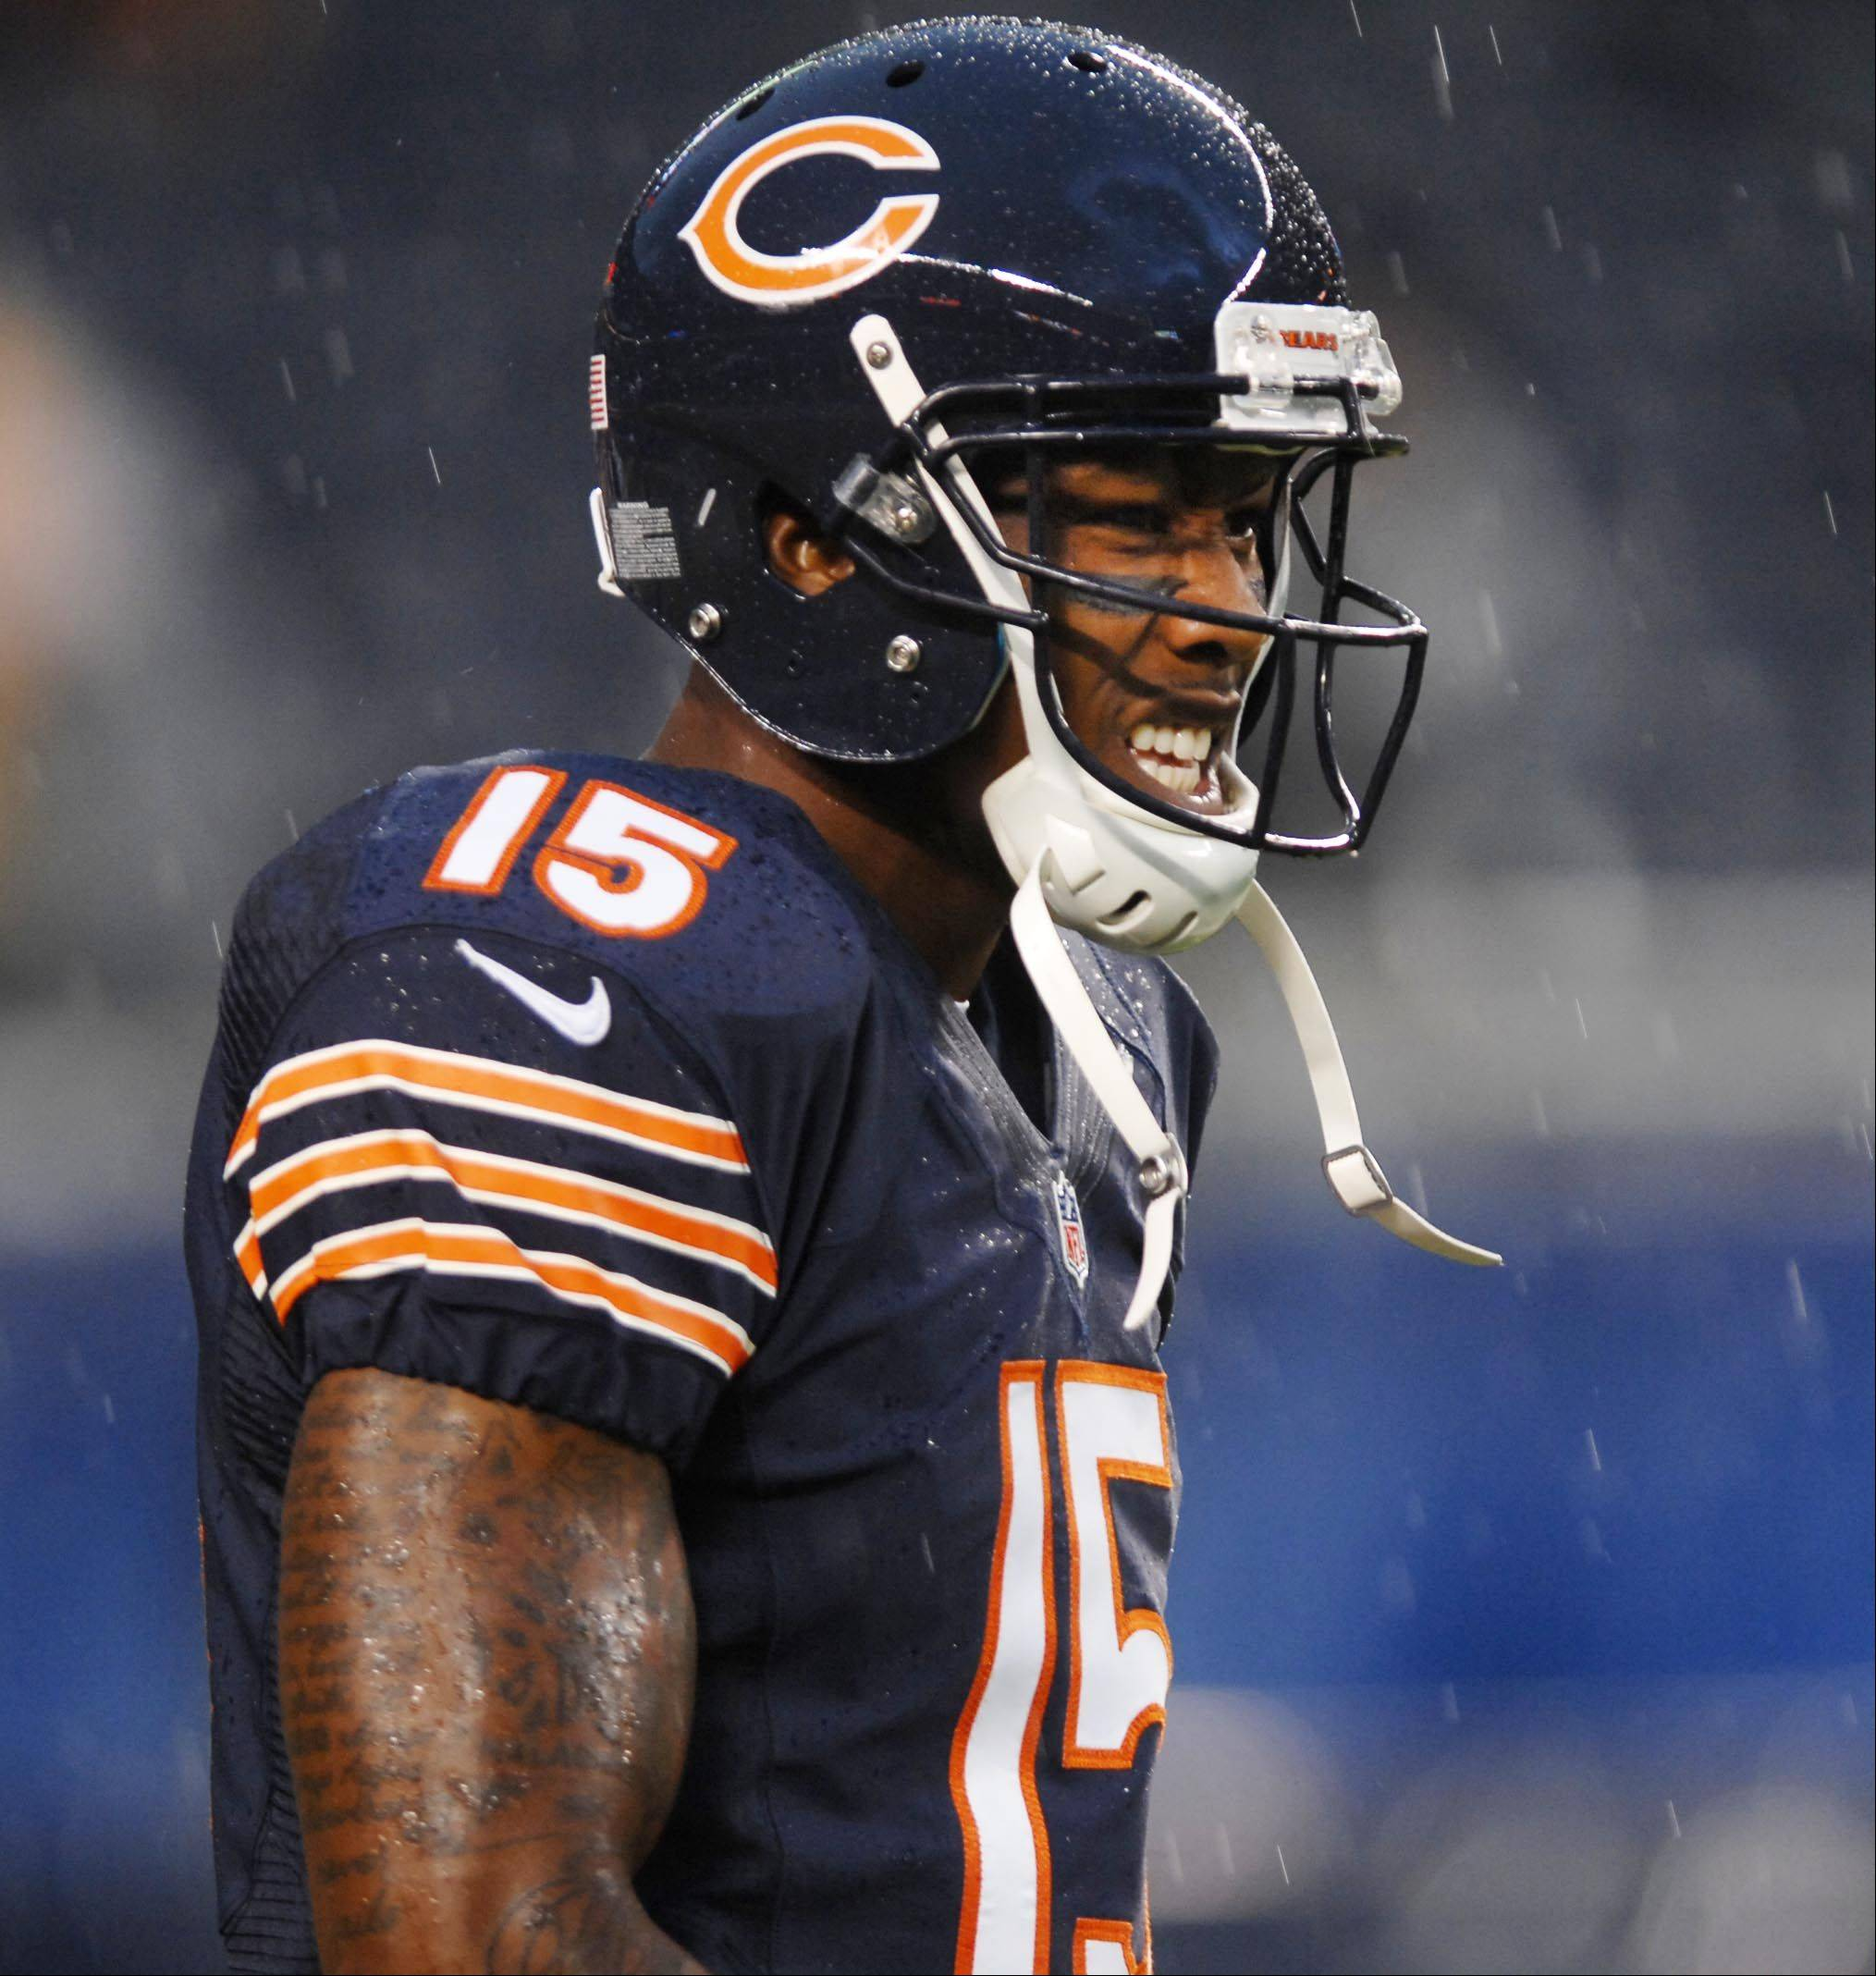 John Starks/jstarks@dailyherald.comBrandon Marshall is sure to start the season at wide recevier for the Bears, but where does that leave Dane Sanzenbacher and Eric Weems? Their special teams contributions could be the deciding factor when it comes to final decisions on the 53-man roster.